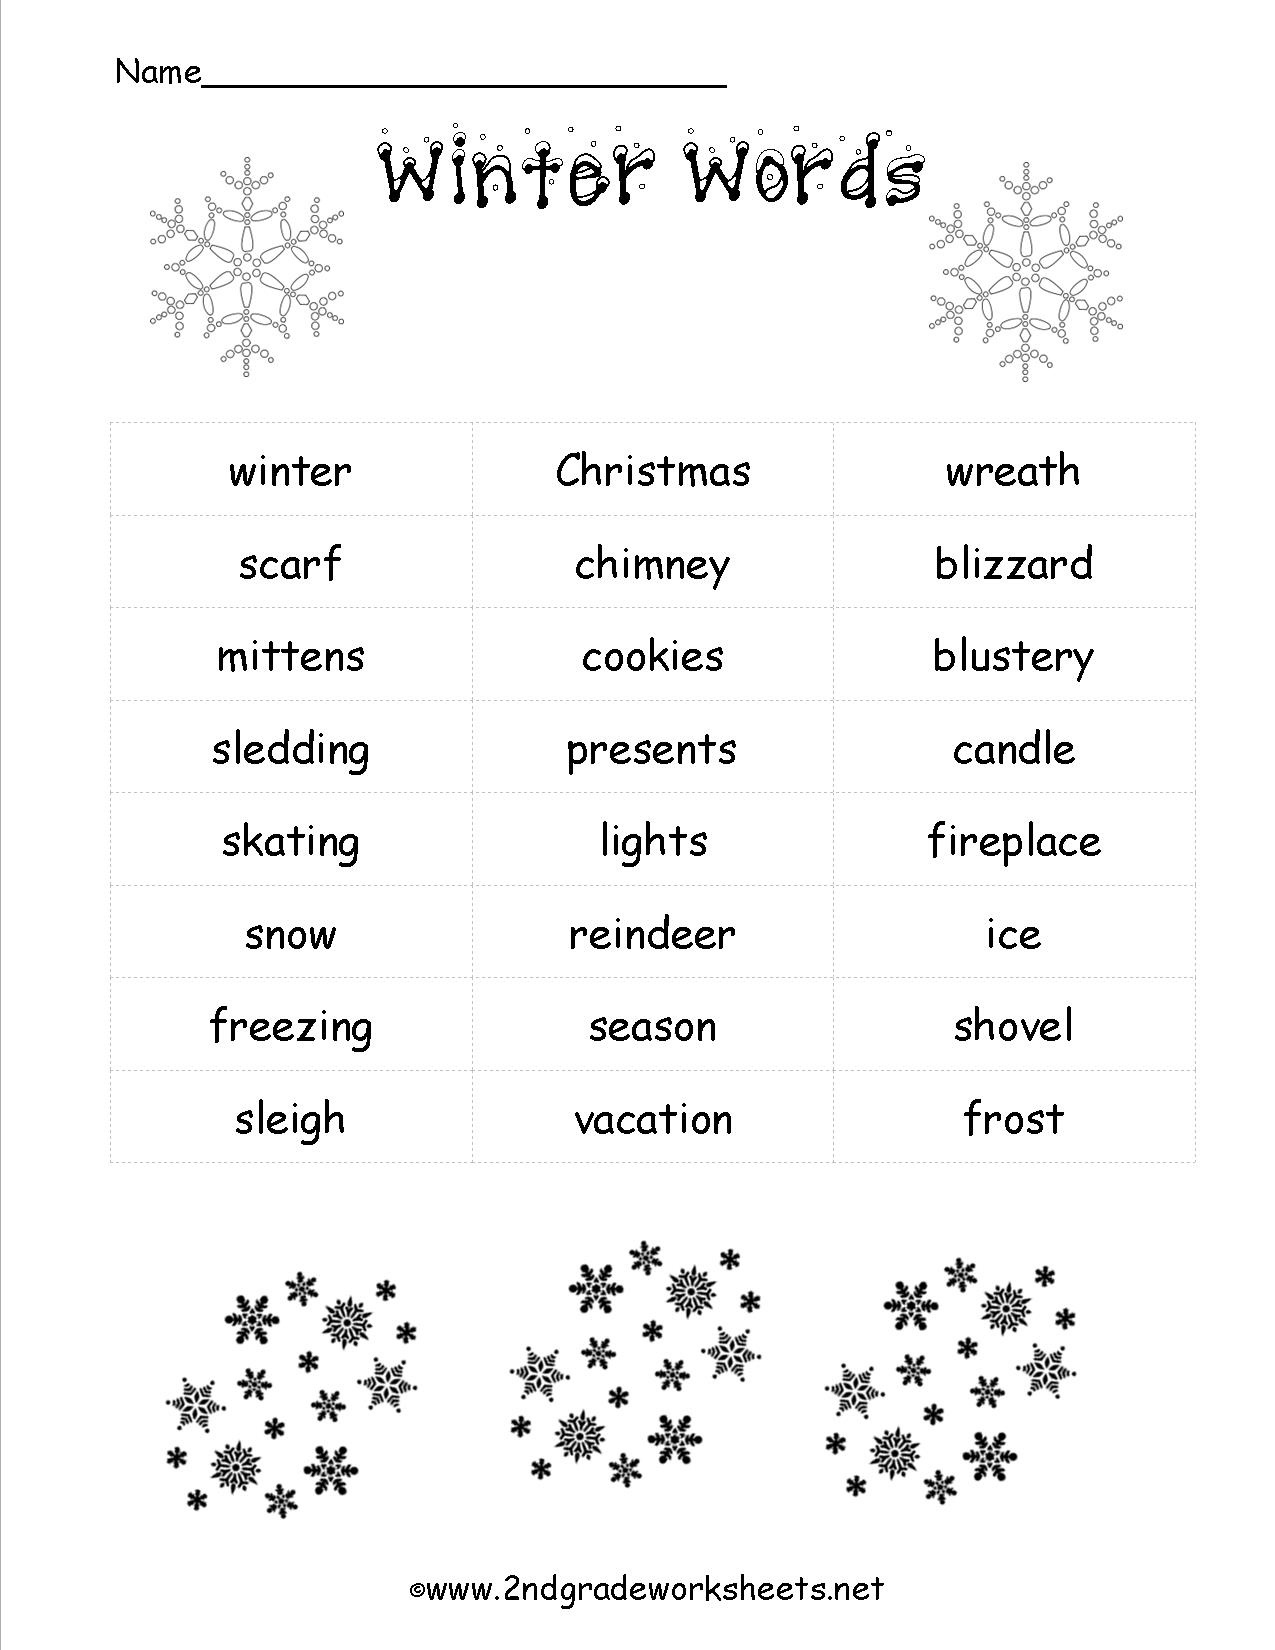 Christmas Worksheets And Printouts - Free Printable Holiday Worksheets